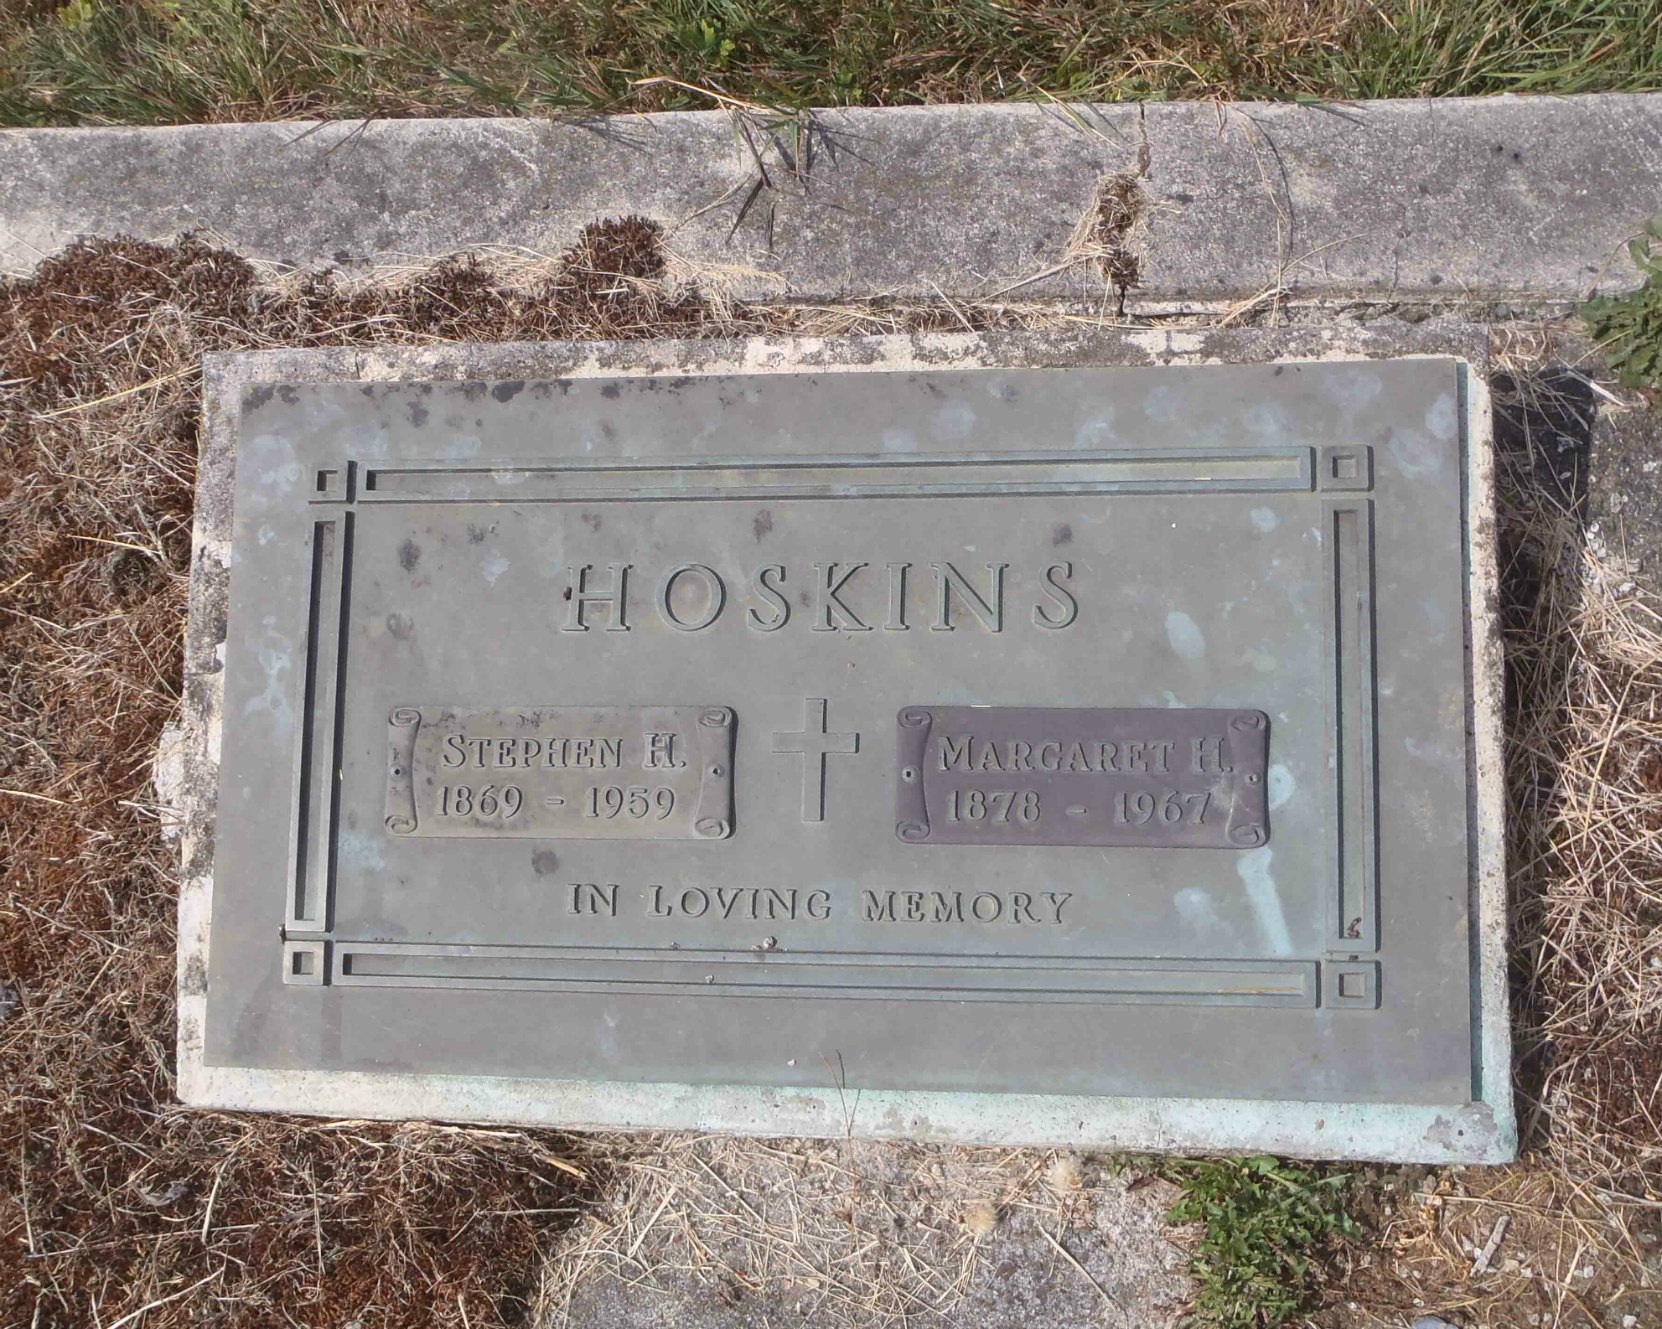 Steven & Margaret Hoskins grave marker, St. Mary's Somenos Anglican cemetery, North Cowichan.